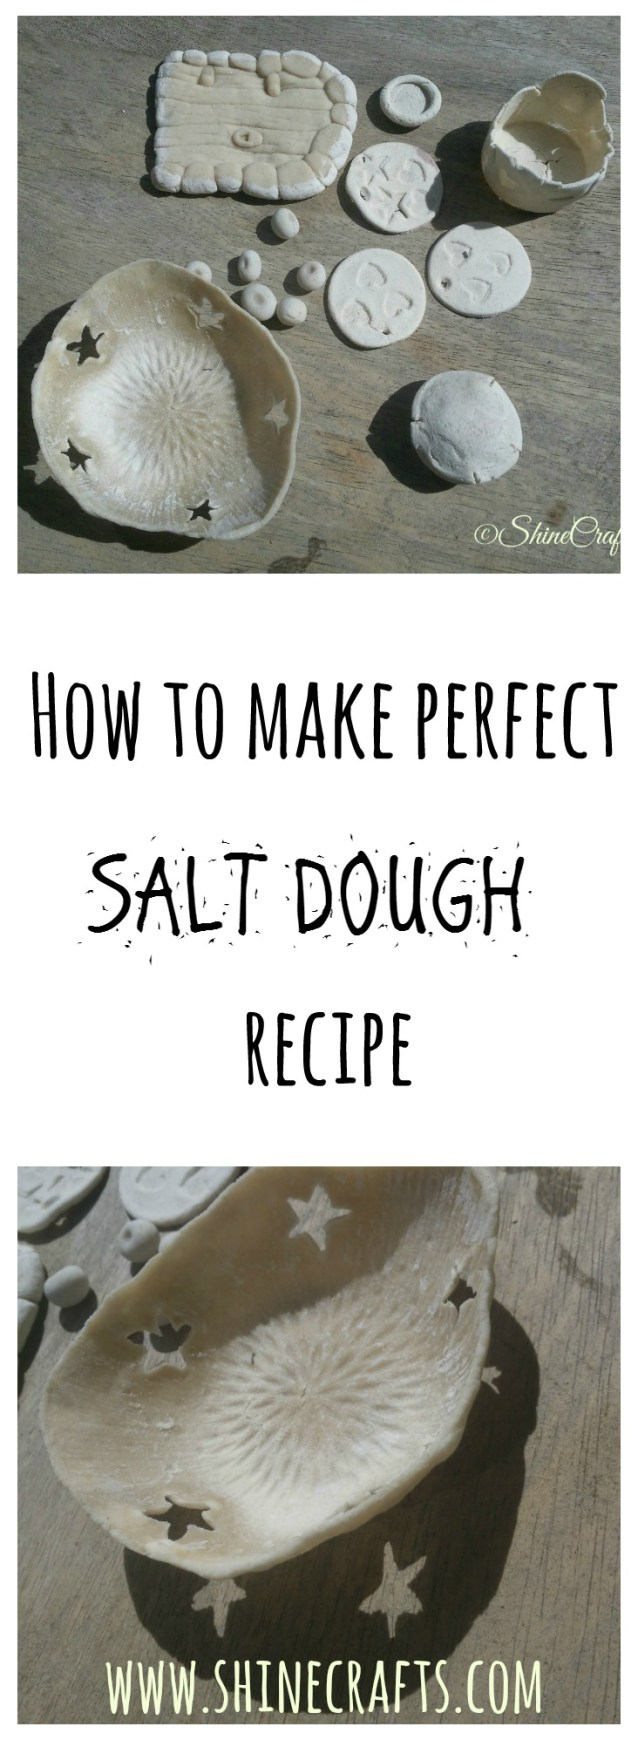 Learn how to make the perfect Salt Dough Recipe